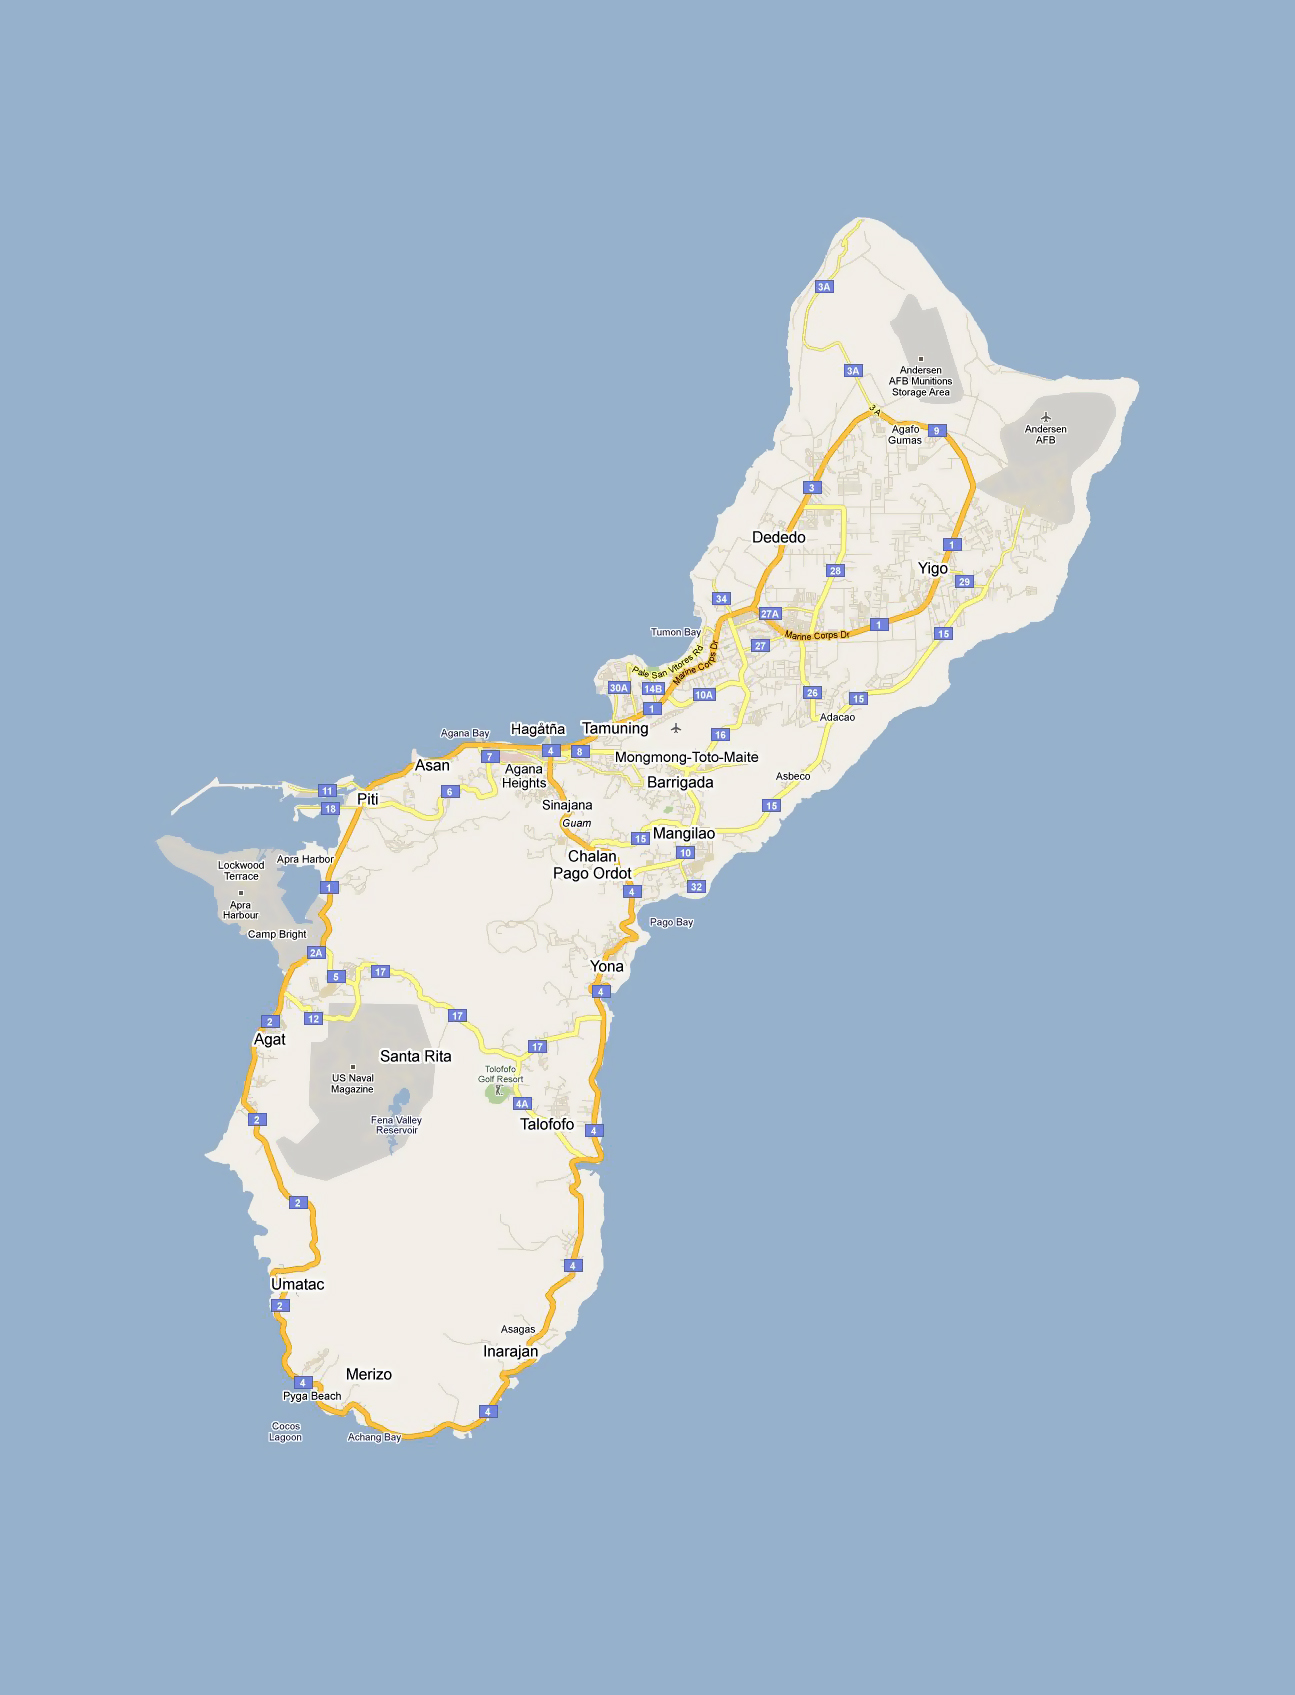 Detailed road map of Guam with cities and villages | Guam ...